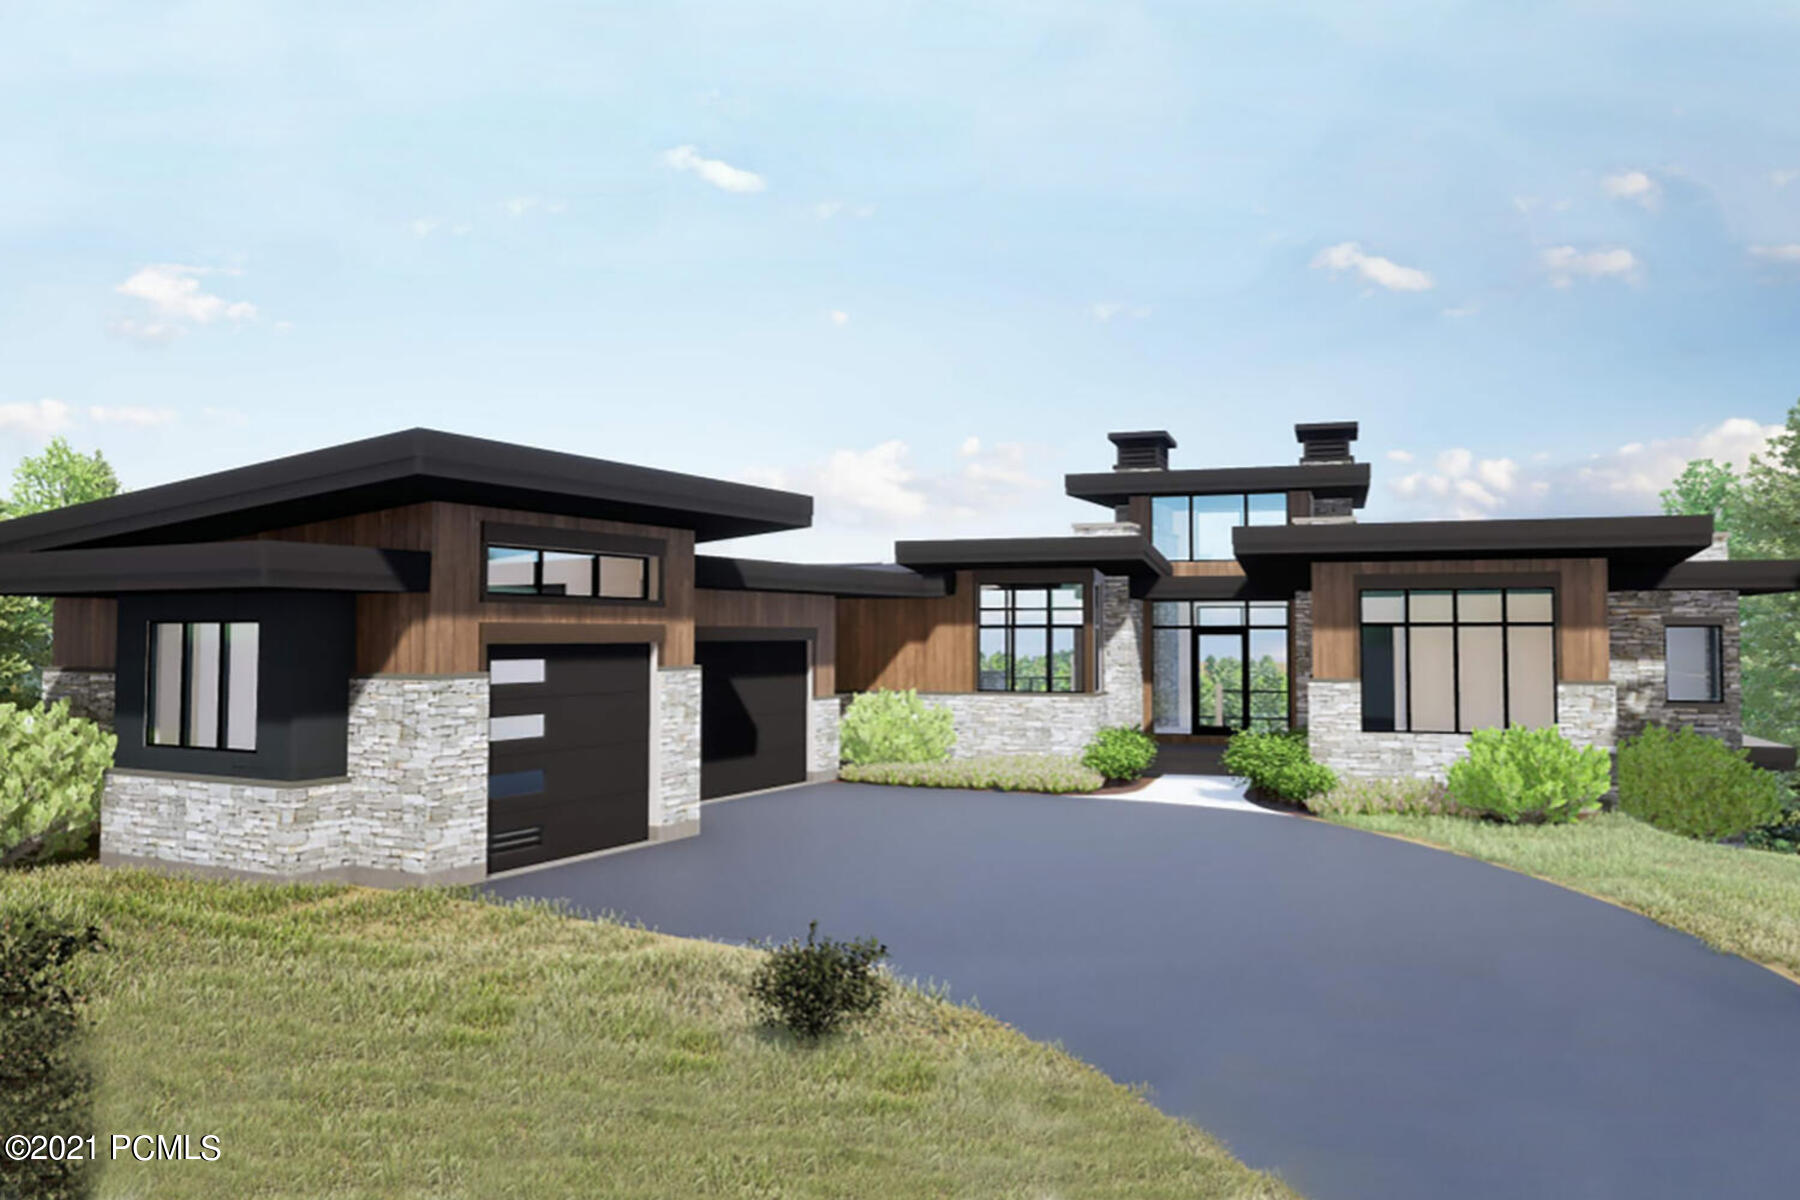 Located in the exclusive West Hills neighborhood of Promontory, this contemporary new build boasts unobstructed, panoramic ski resort views and sits across the street from the Pete Dye Golf Course. Blake Miller Homes spares no expense in finishes and design. You'll be spoiled with over 1650 square feet in covered, heated outdoor space for you to relax and soak in the surroundings views on one of the most coveted lots in Promontory. Enjoy main level living with a large foyer, secluded study and spacious master suite. The modern open kitchen with Wolf appliances, and wine room adjacent to the formal dining area is an entertainers dream. The spacious lower level offers a game area, wet bar, exercise room, media room, and additional outdoor living space for casual gathering large or small. Enjoy Promontory club's incredible amenities while experiencing a modern home with some of the most sought after views Park City has to offer.